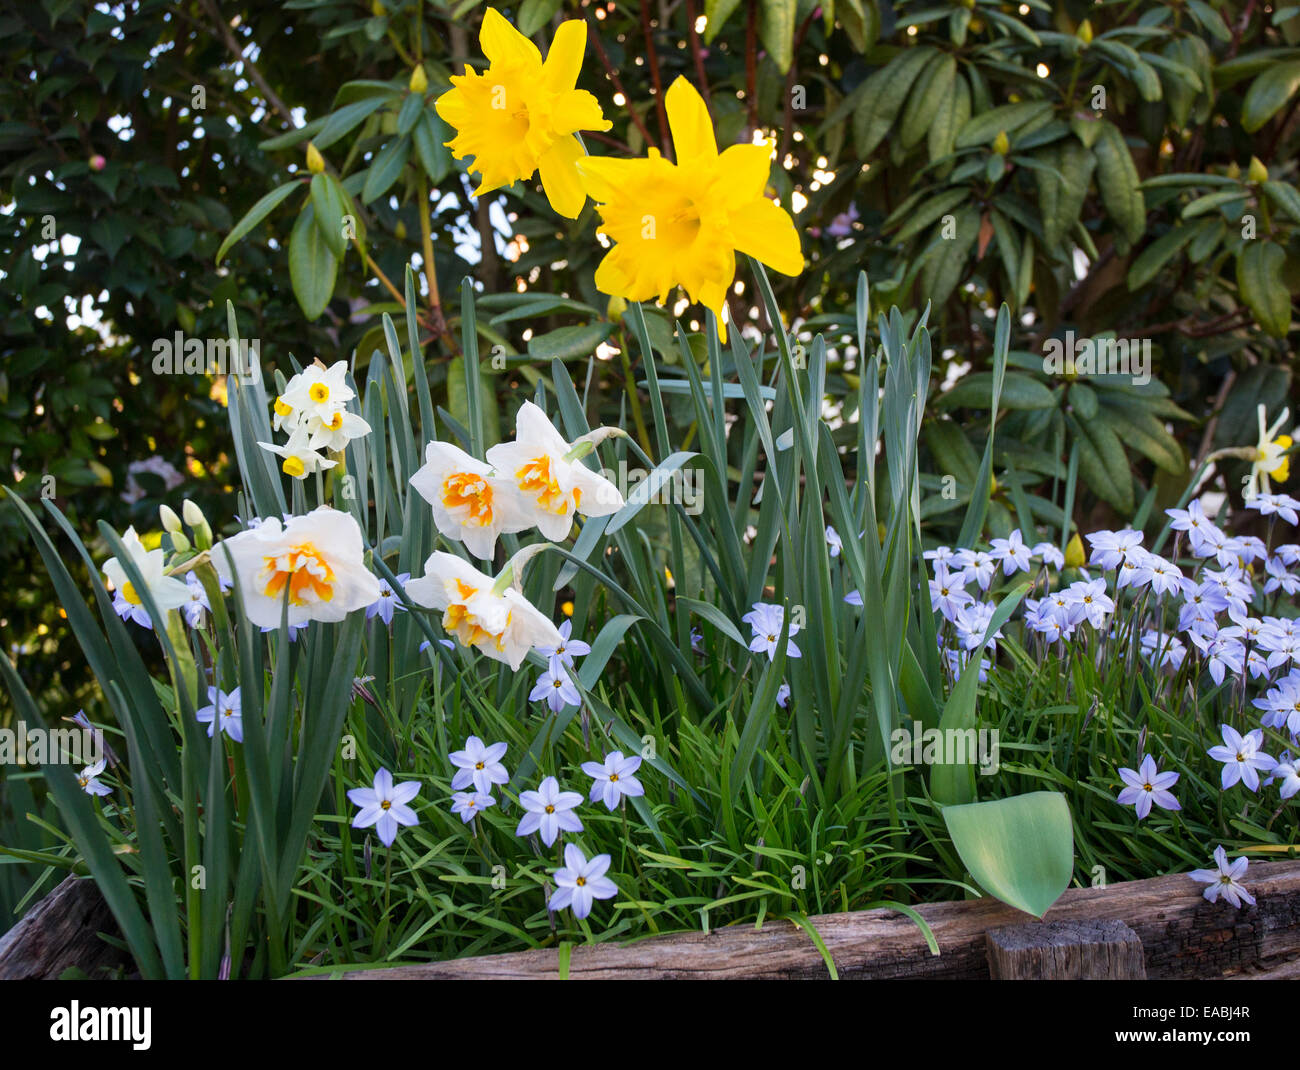 Daffodils and spring flowers in a garden nsw australia stock photo daffodils and spring flowers in a garden nsw australia mightylinksfo